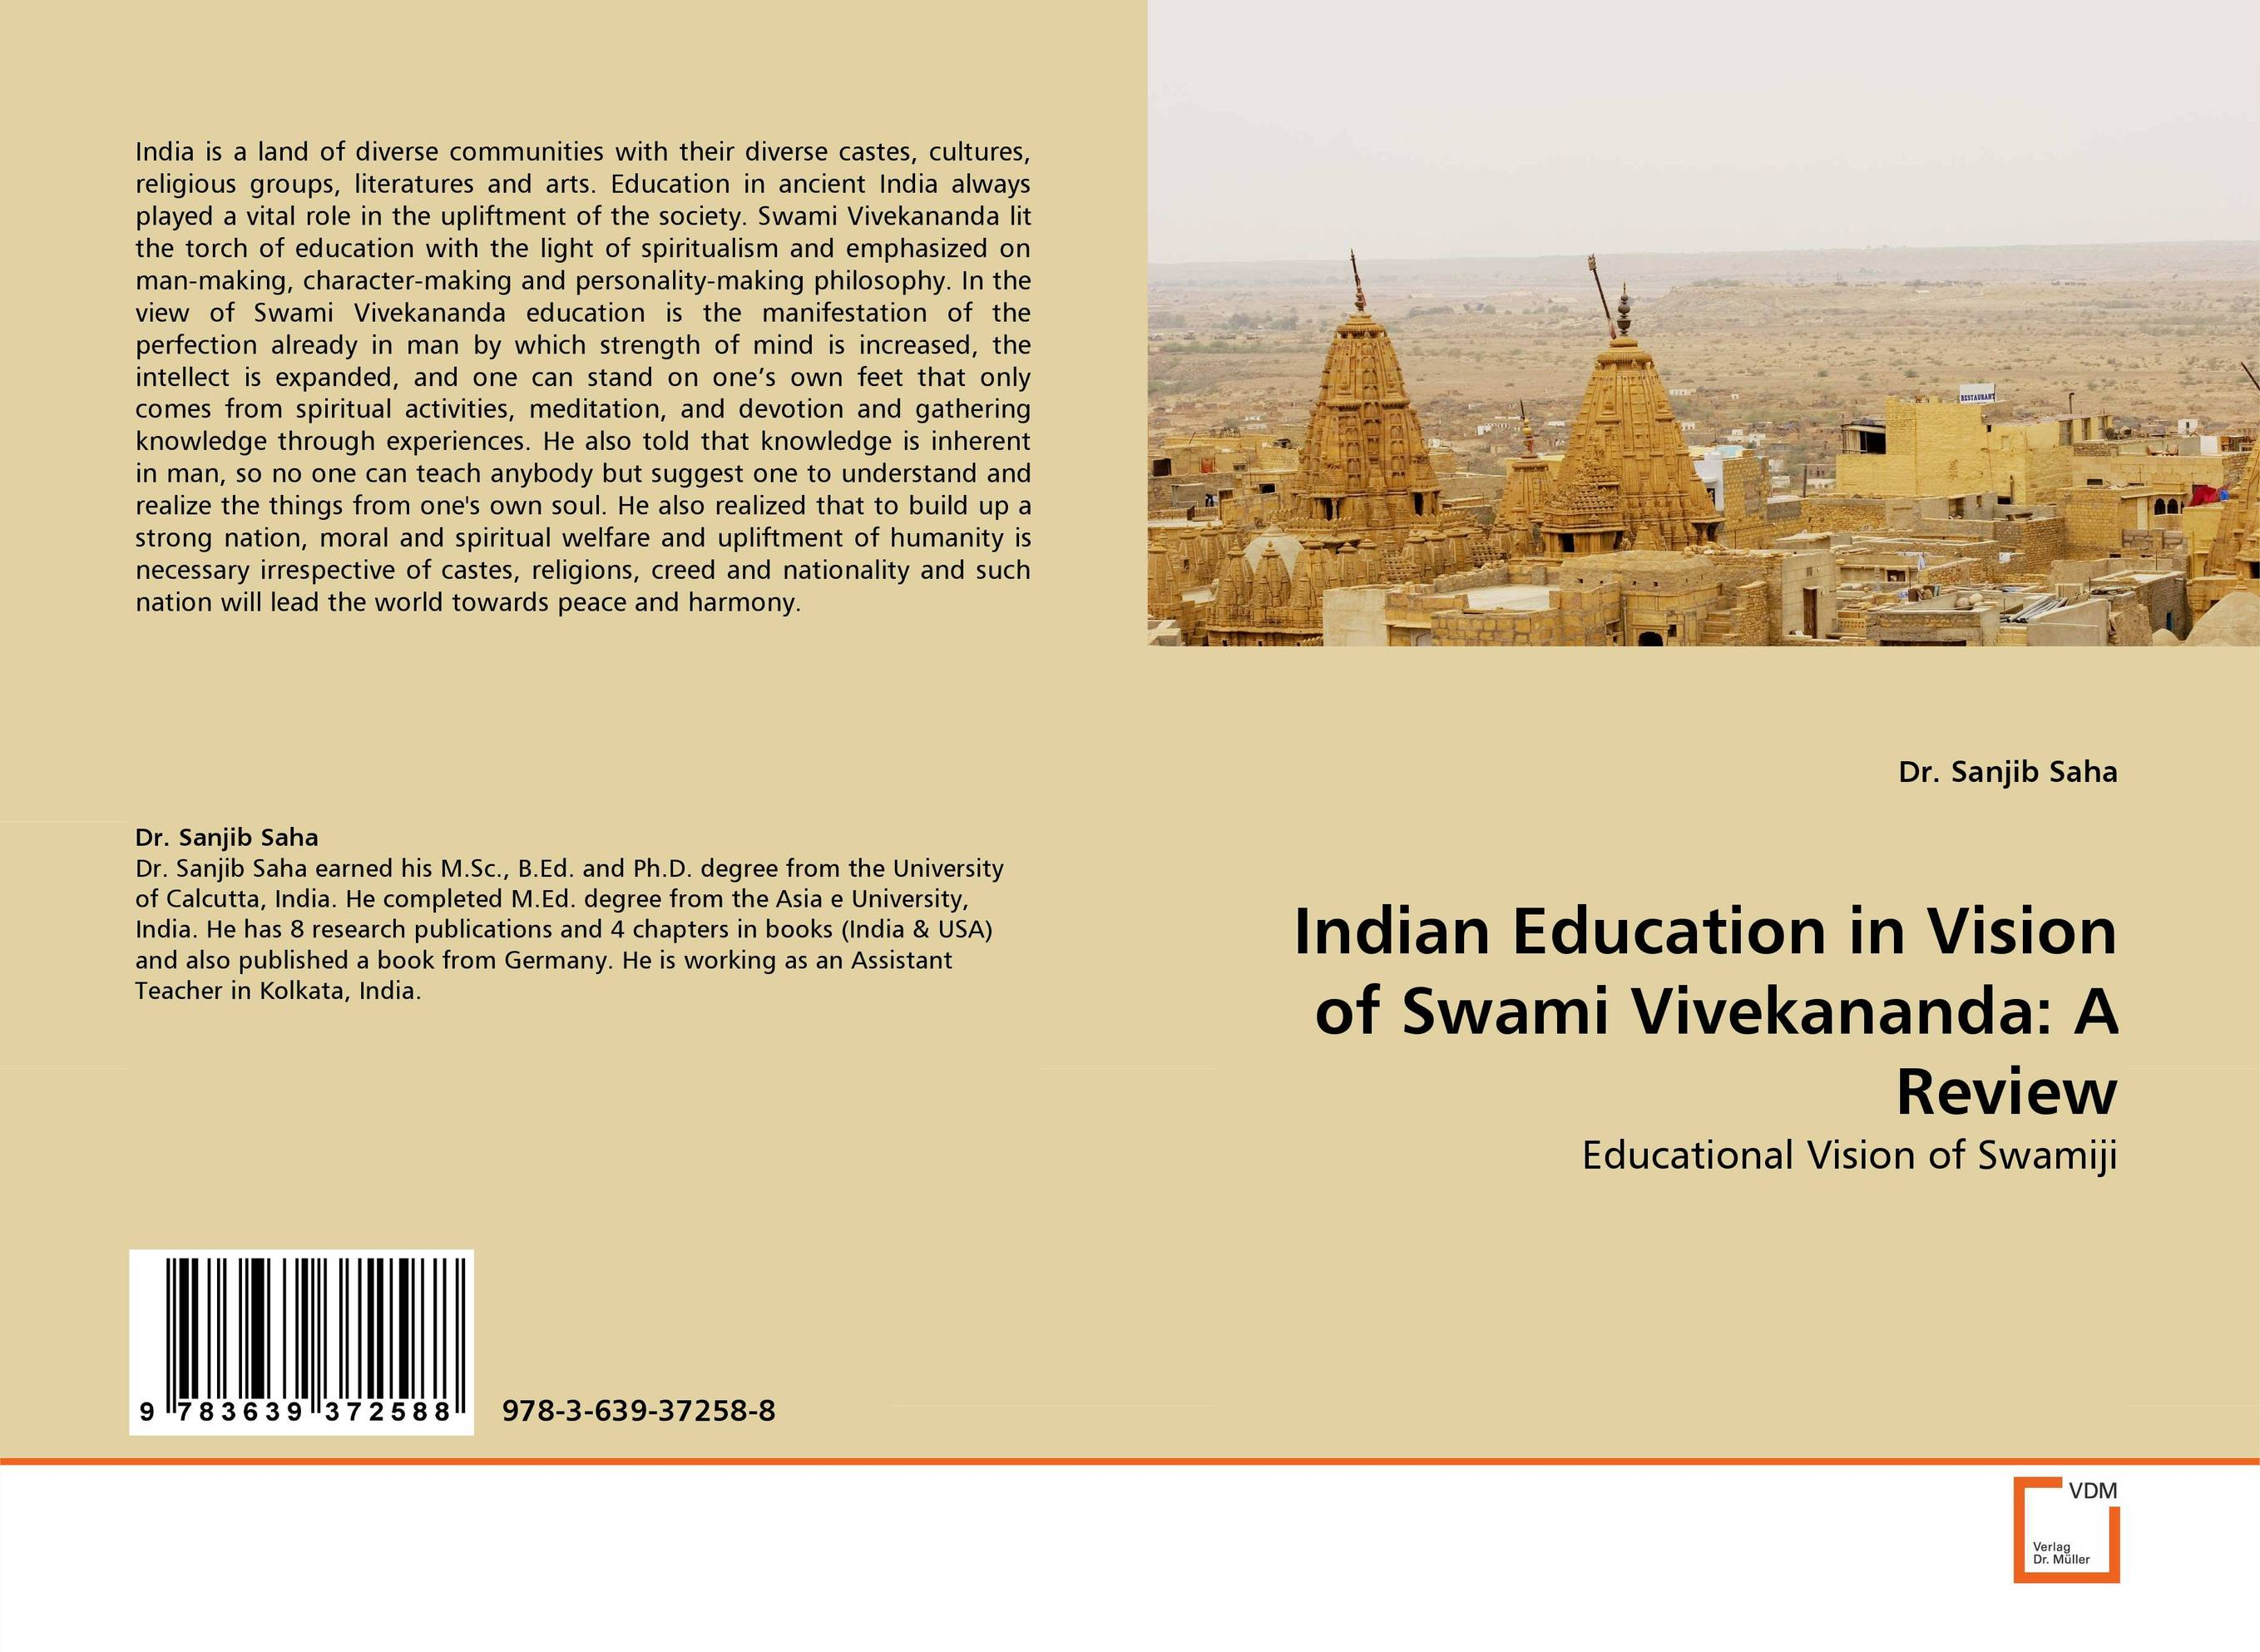 Indian Education in Vision of Swami Vivekananda: A Review